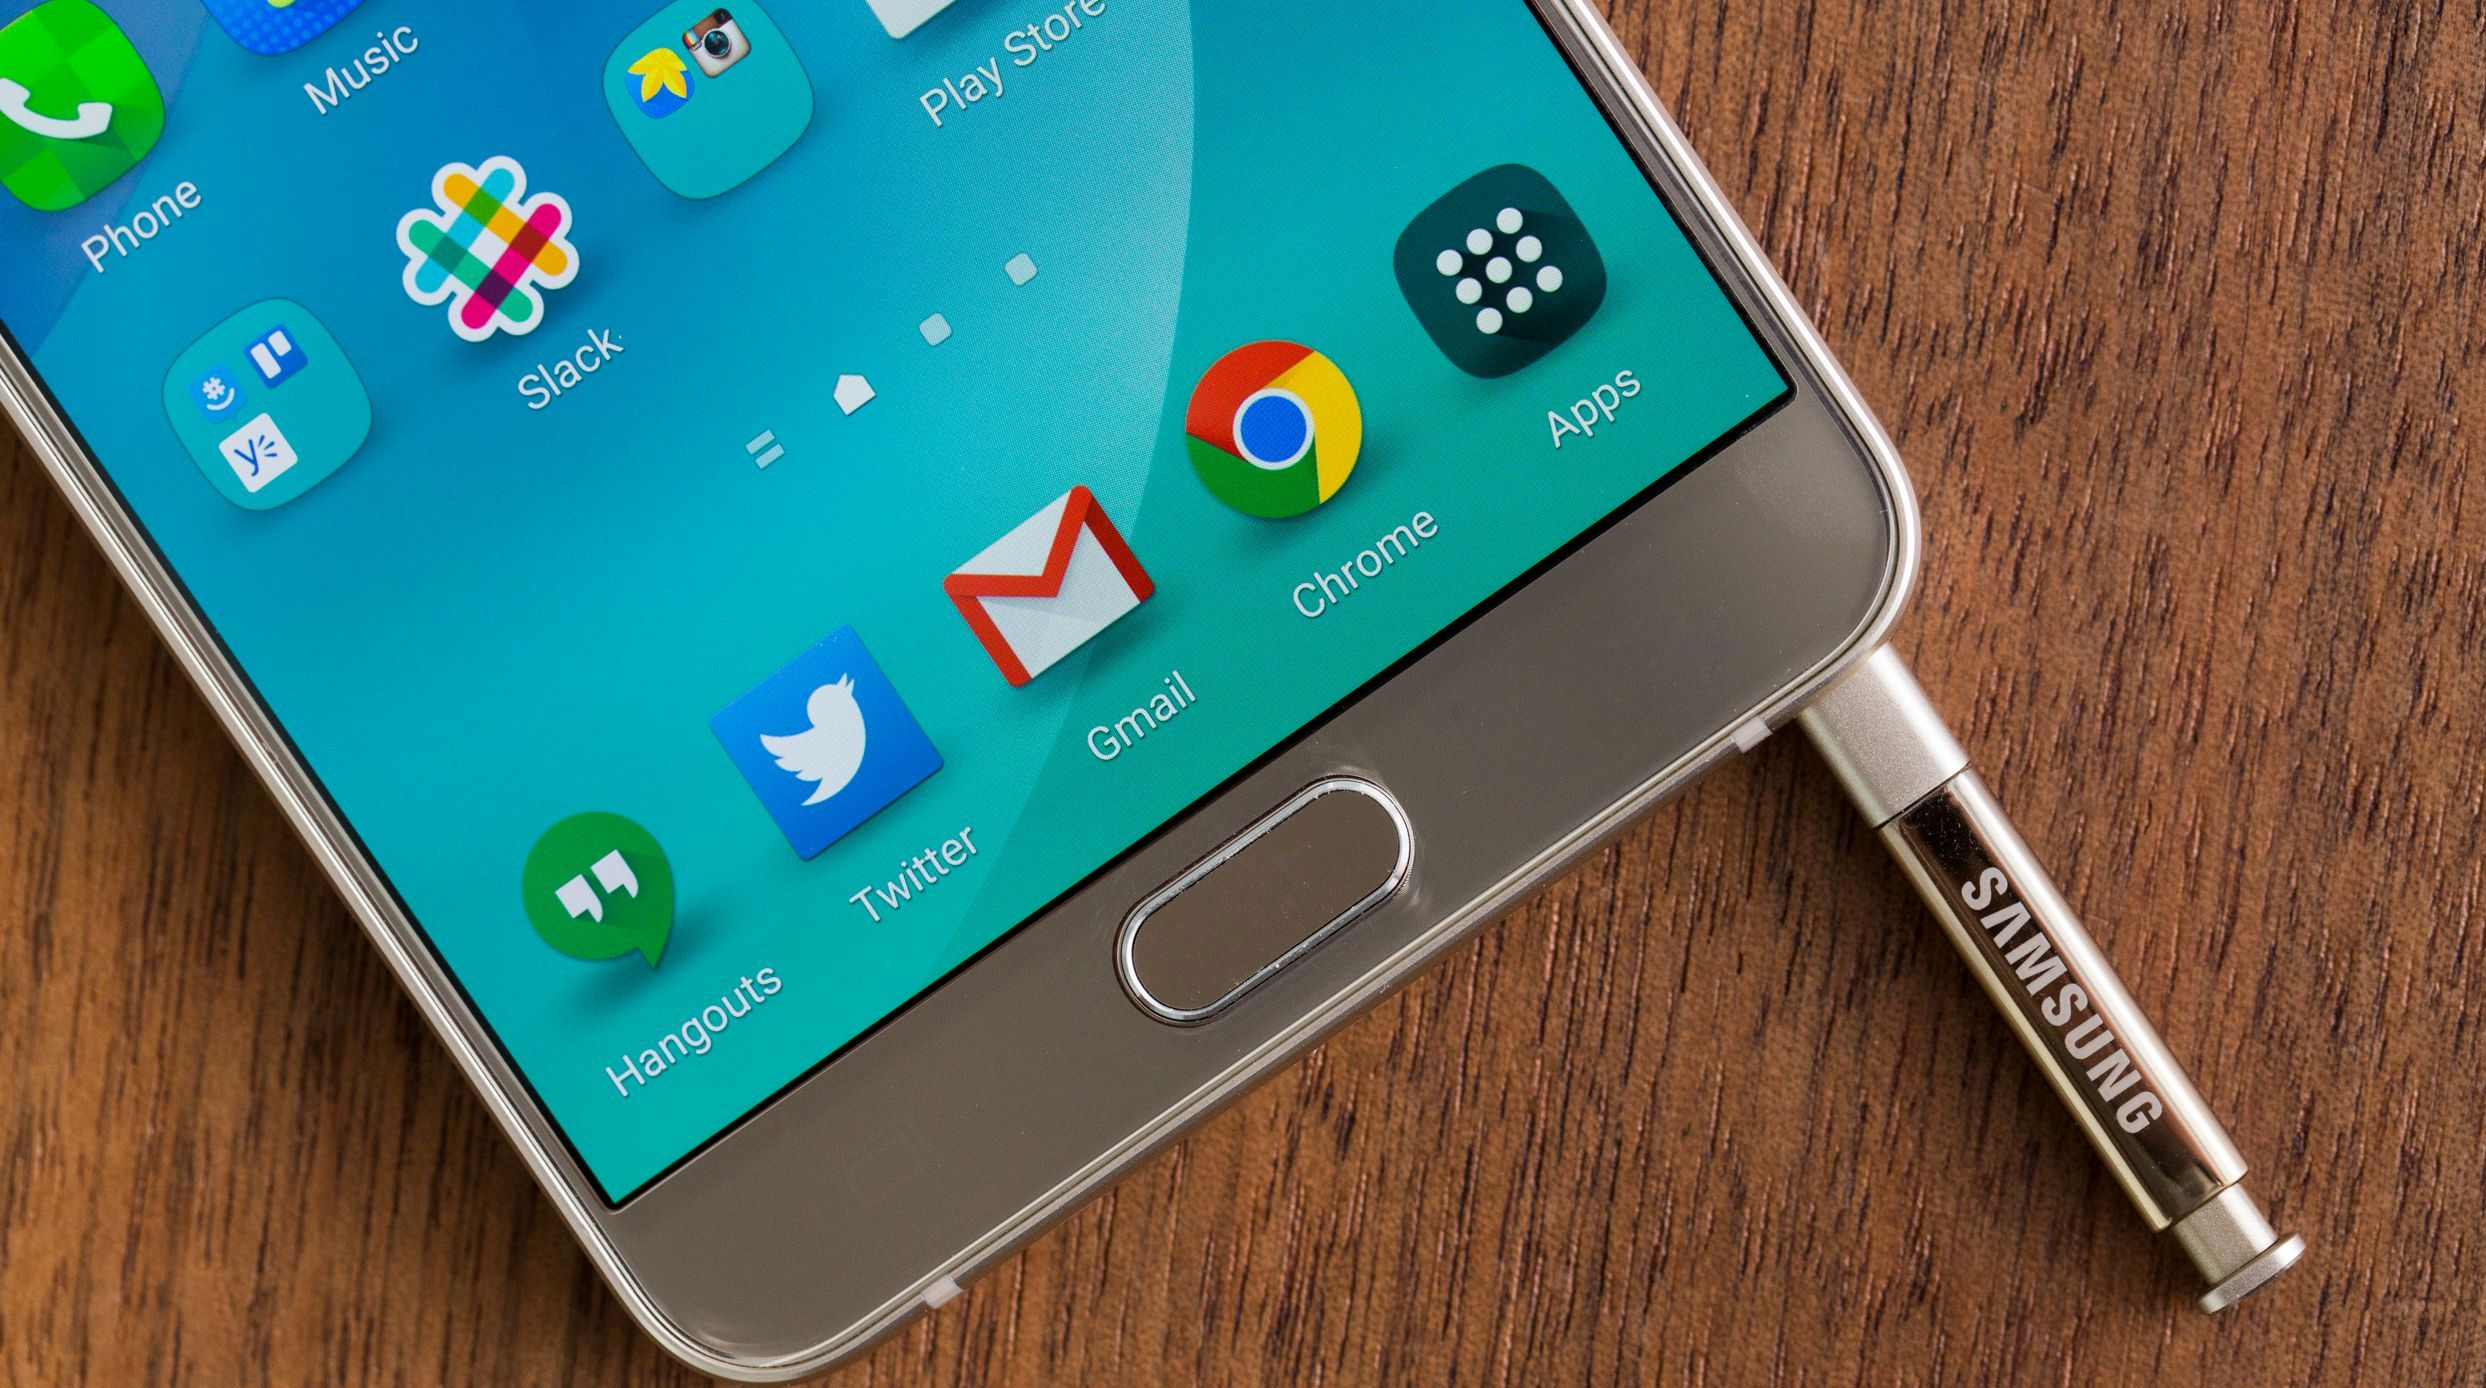 Samsung Galaxy Note 5 launches in India